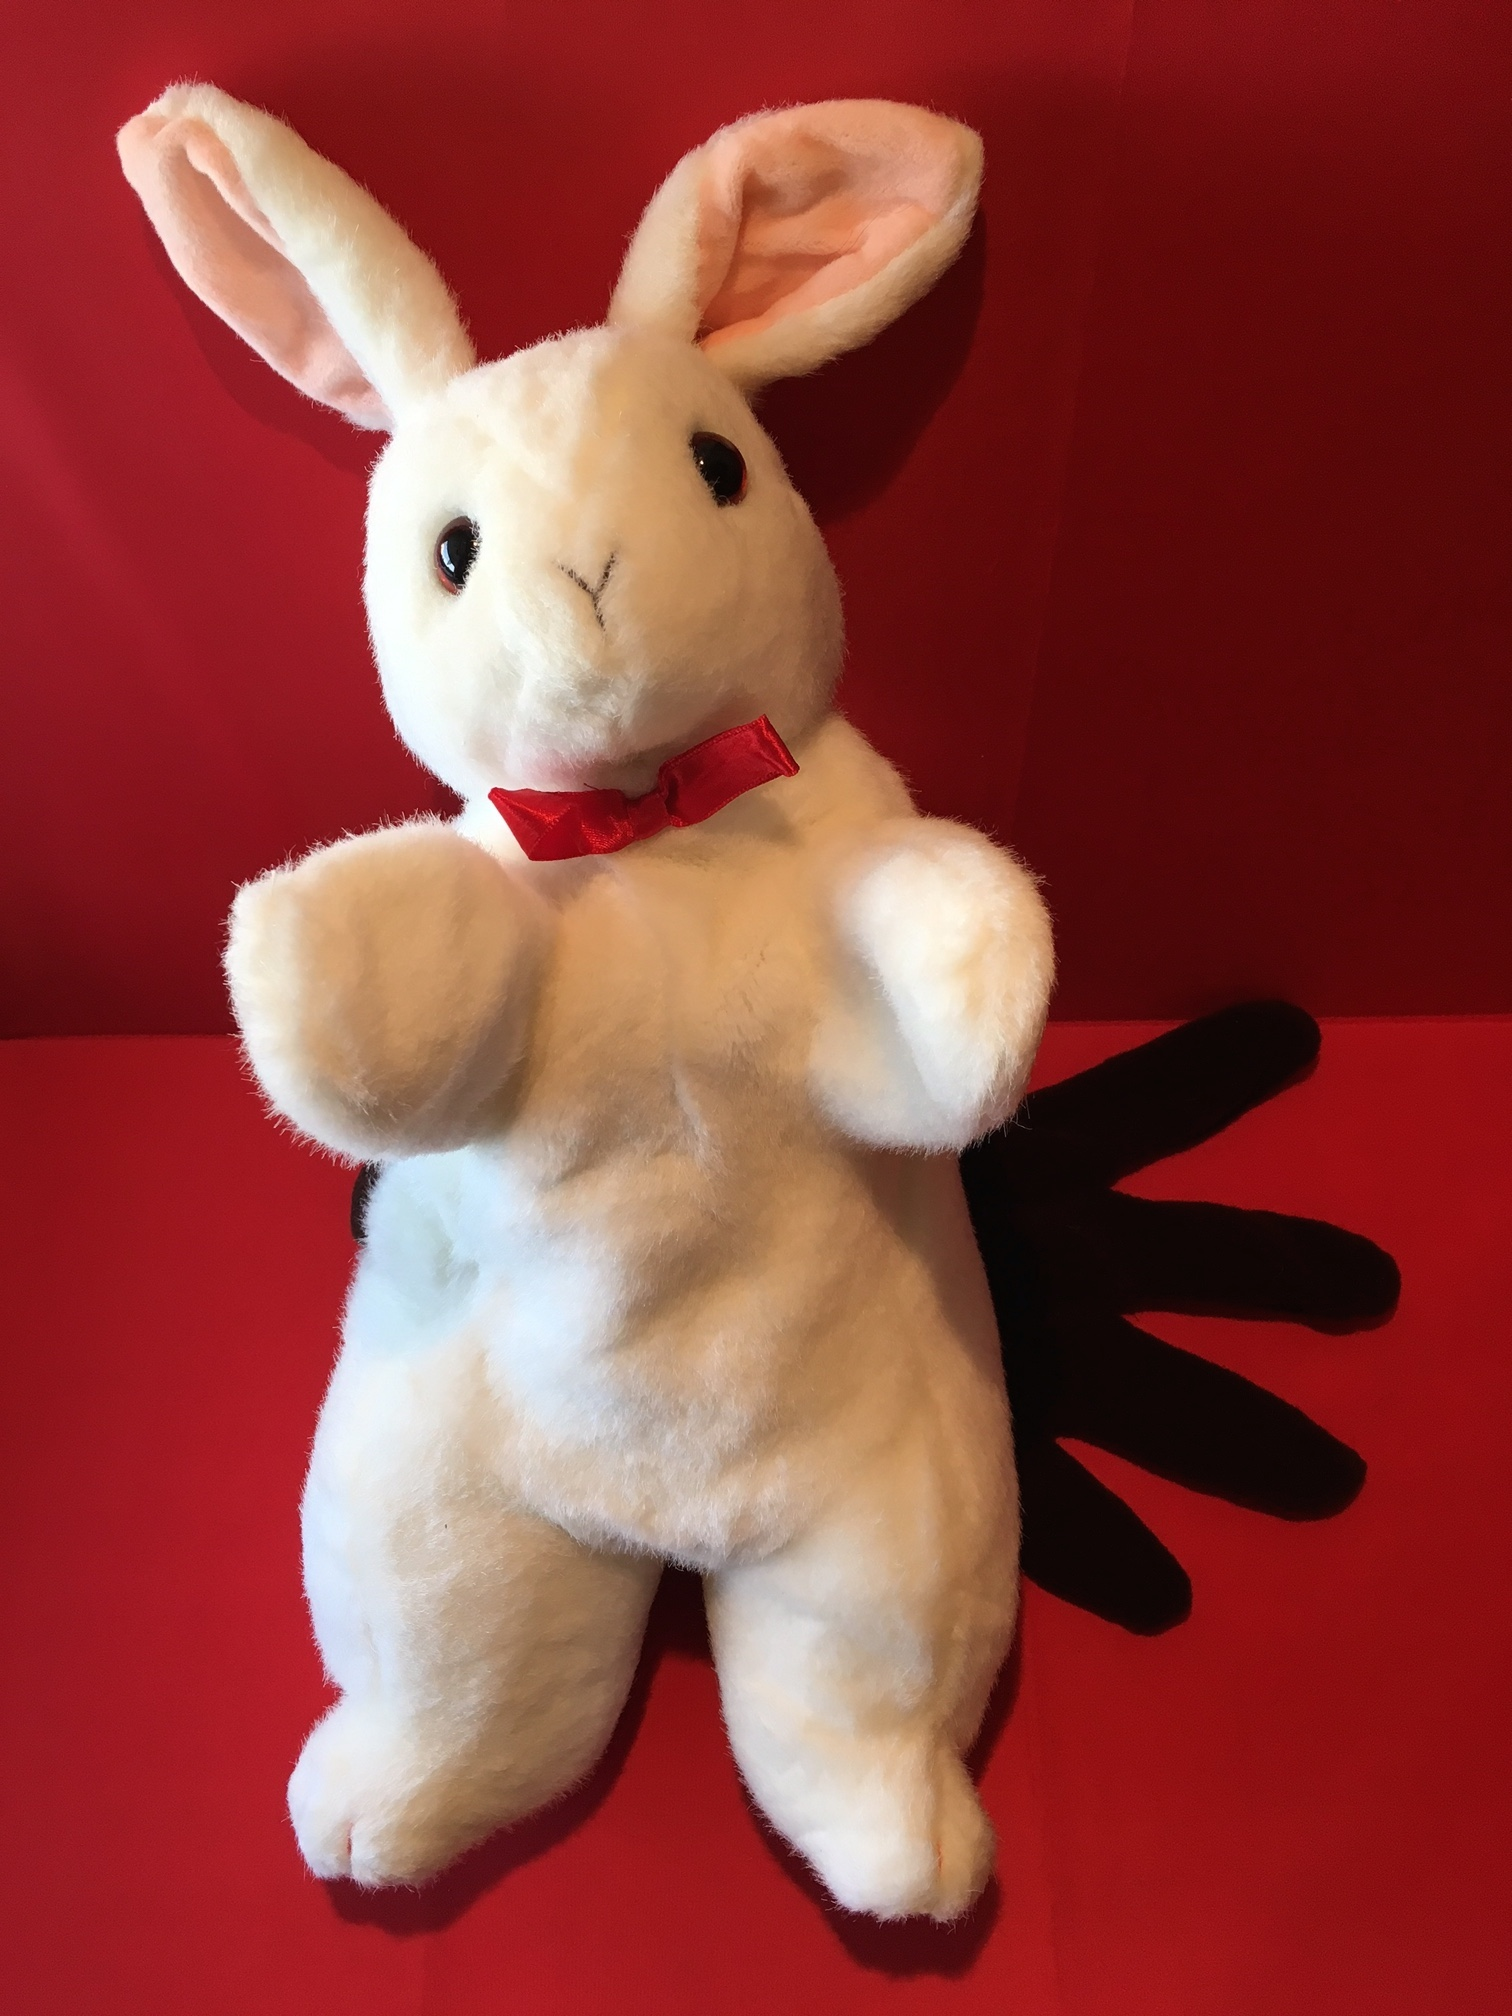 Puppet Two Handed Rabbit with Glove 16""